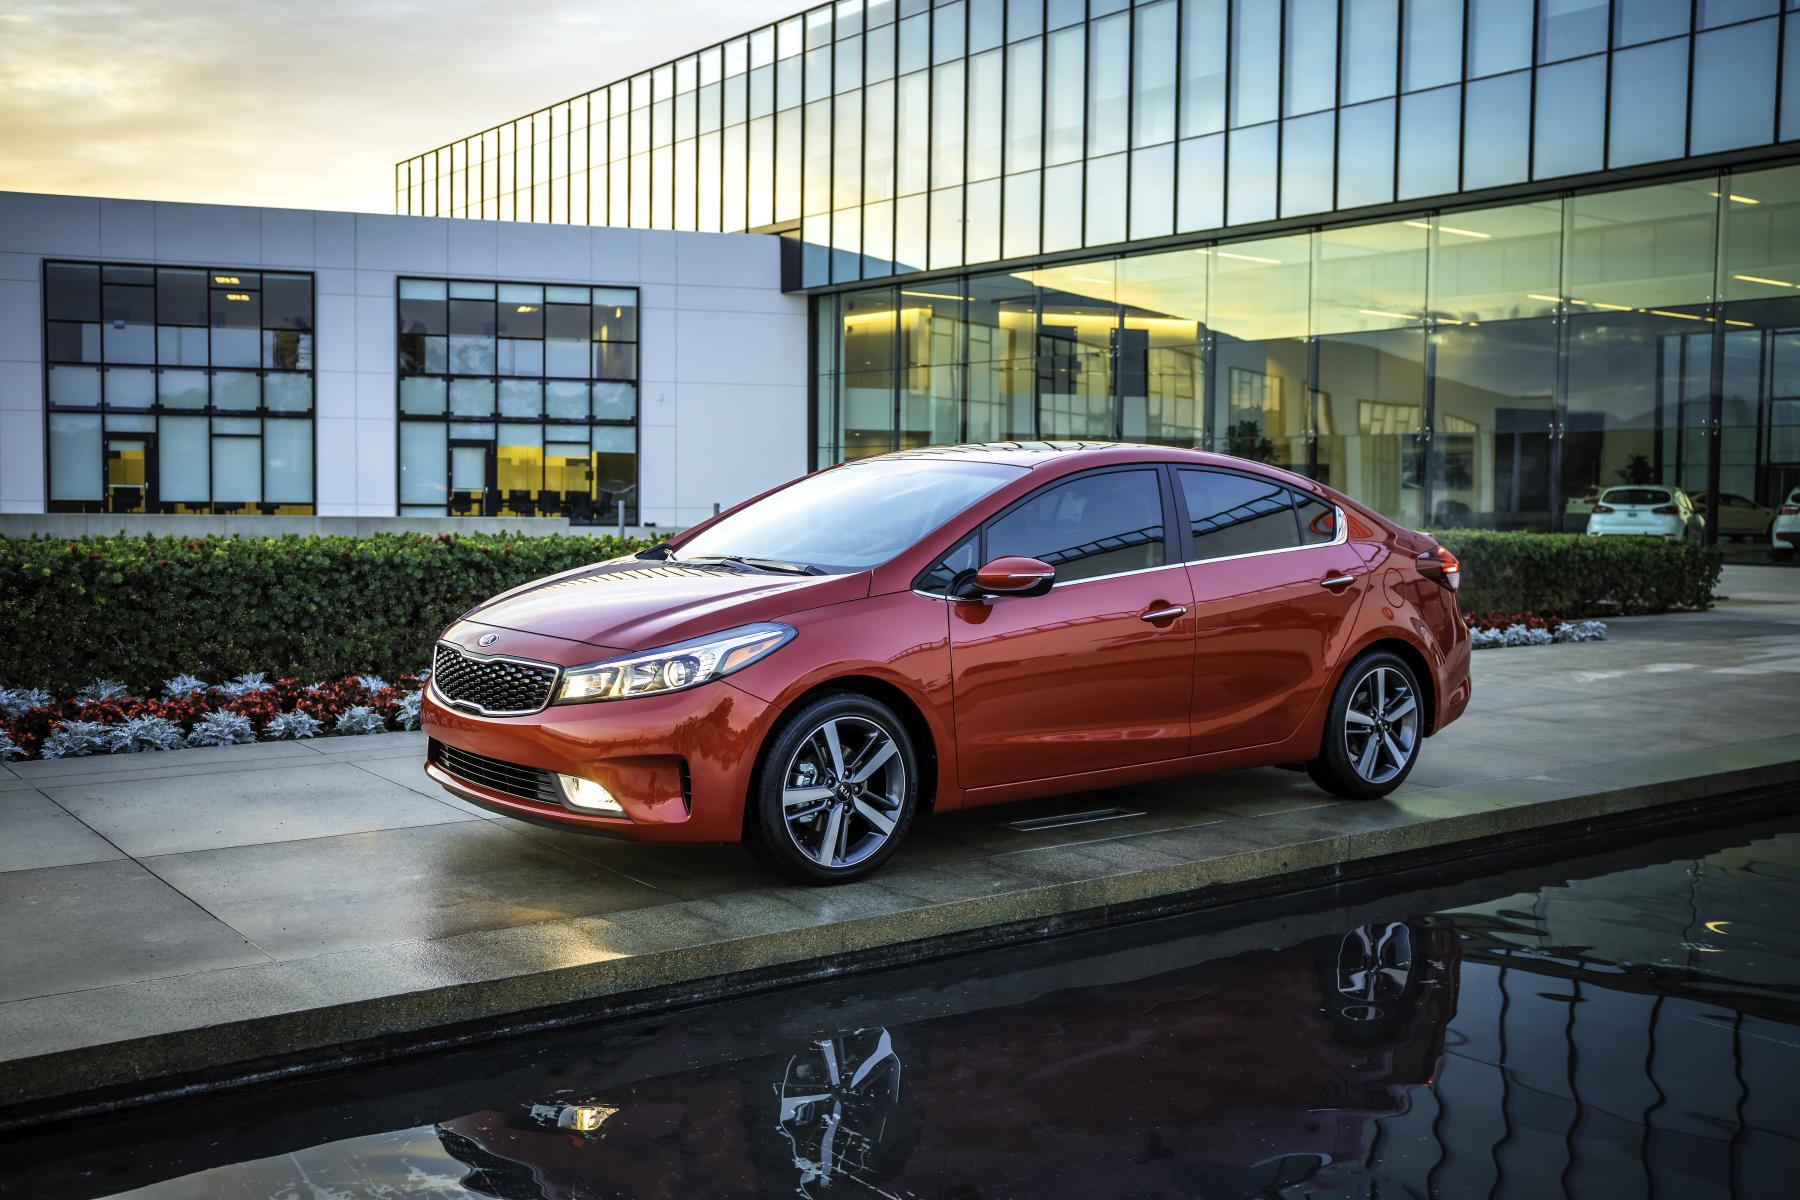 Kia Forte, one of Kia's top selling vehicles in calendar year 2017